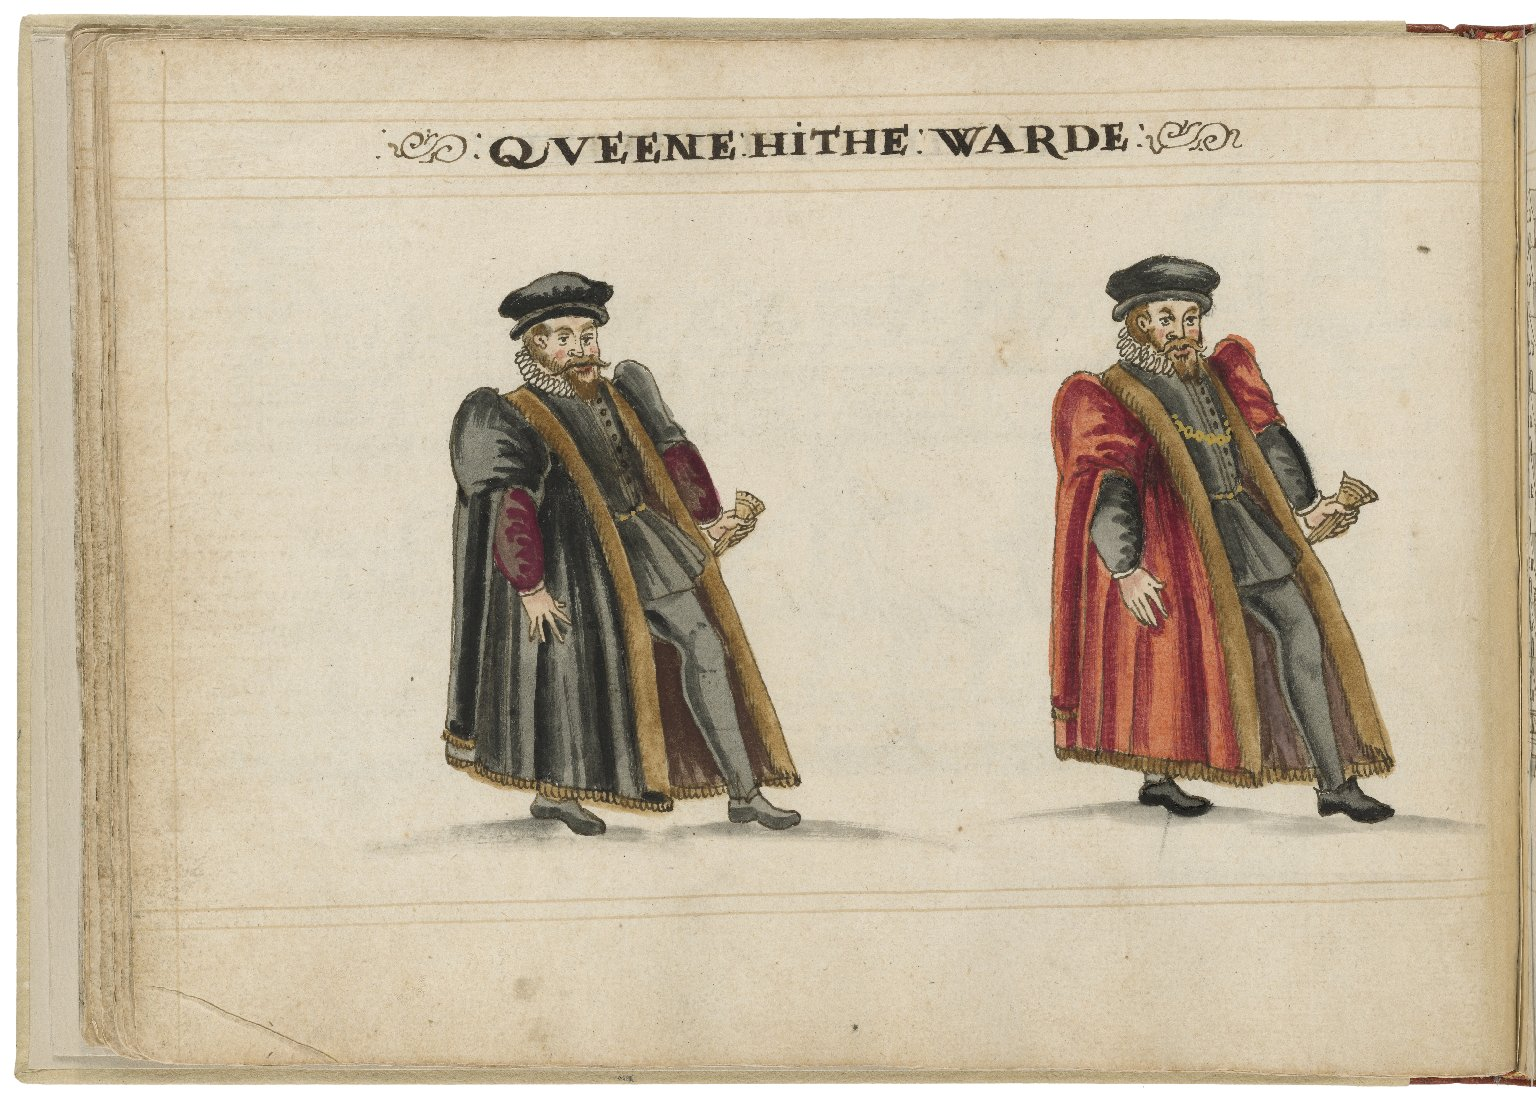 Watercolour painting of the alderman and deputy in charge of Queenhithe Ward by Hugh Alley. Image courtesy of the Folger Digital Image Collection.